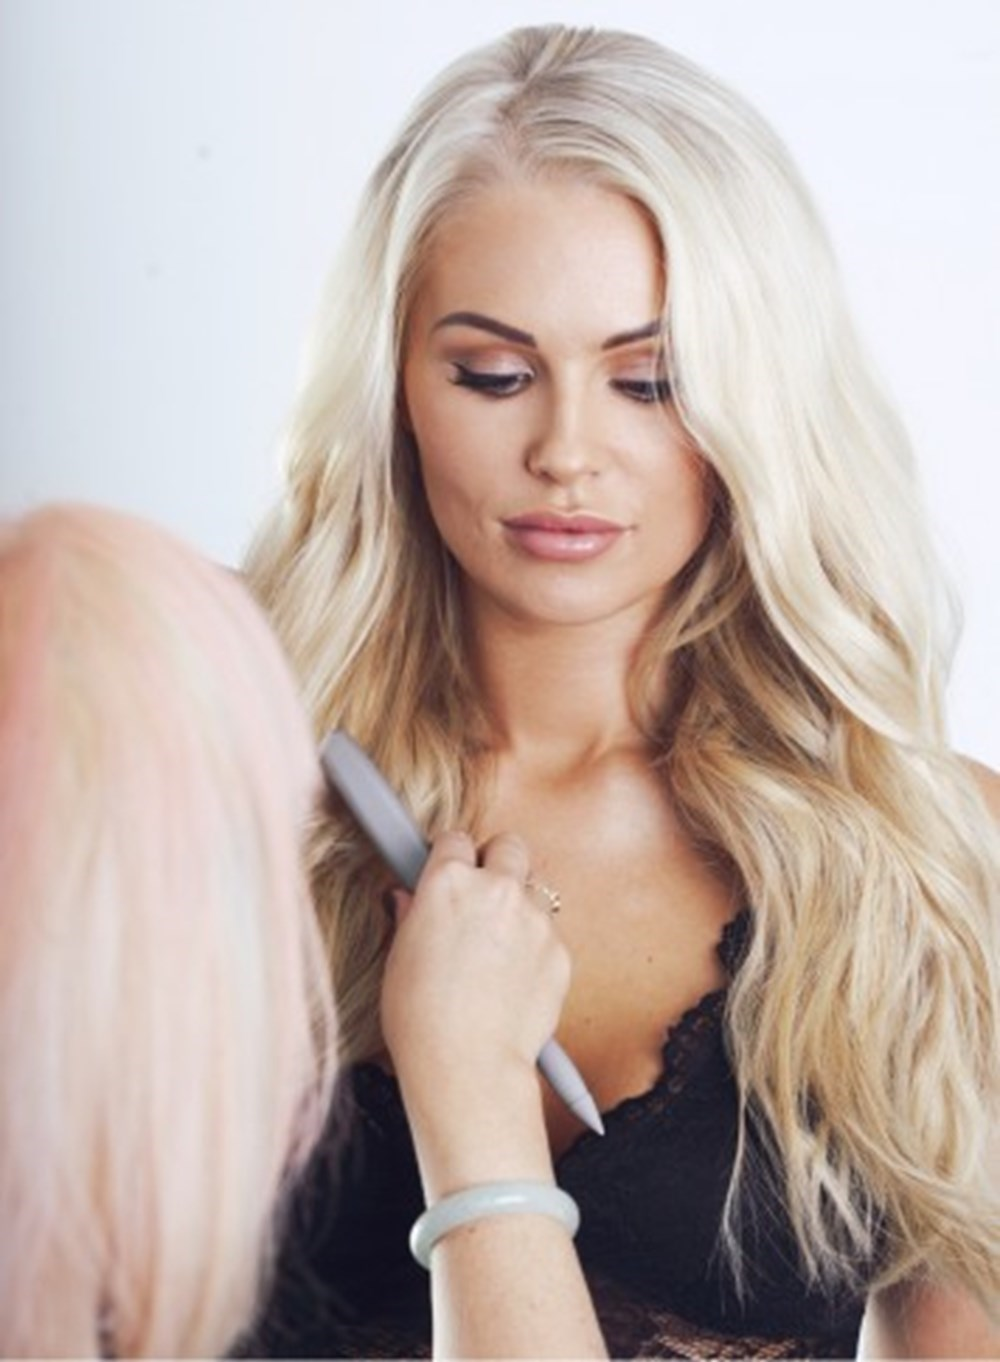 Model Isabelle Allan on Hair Extensions Photoshoot